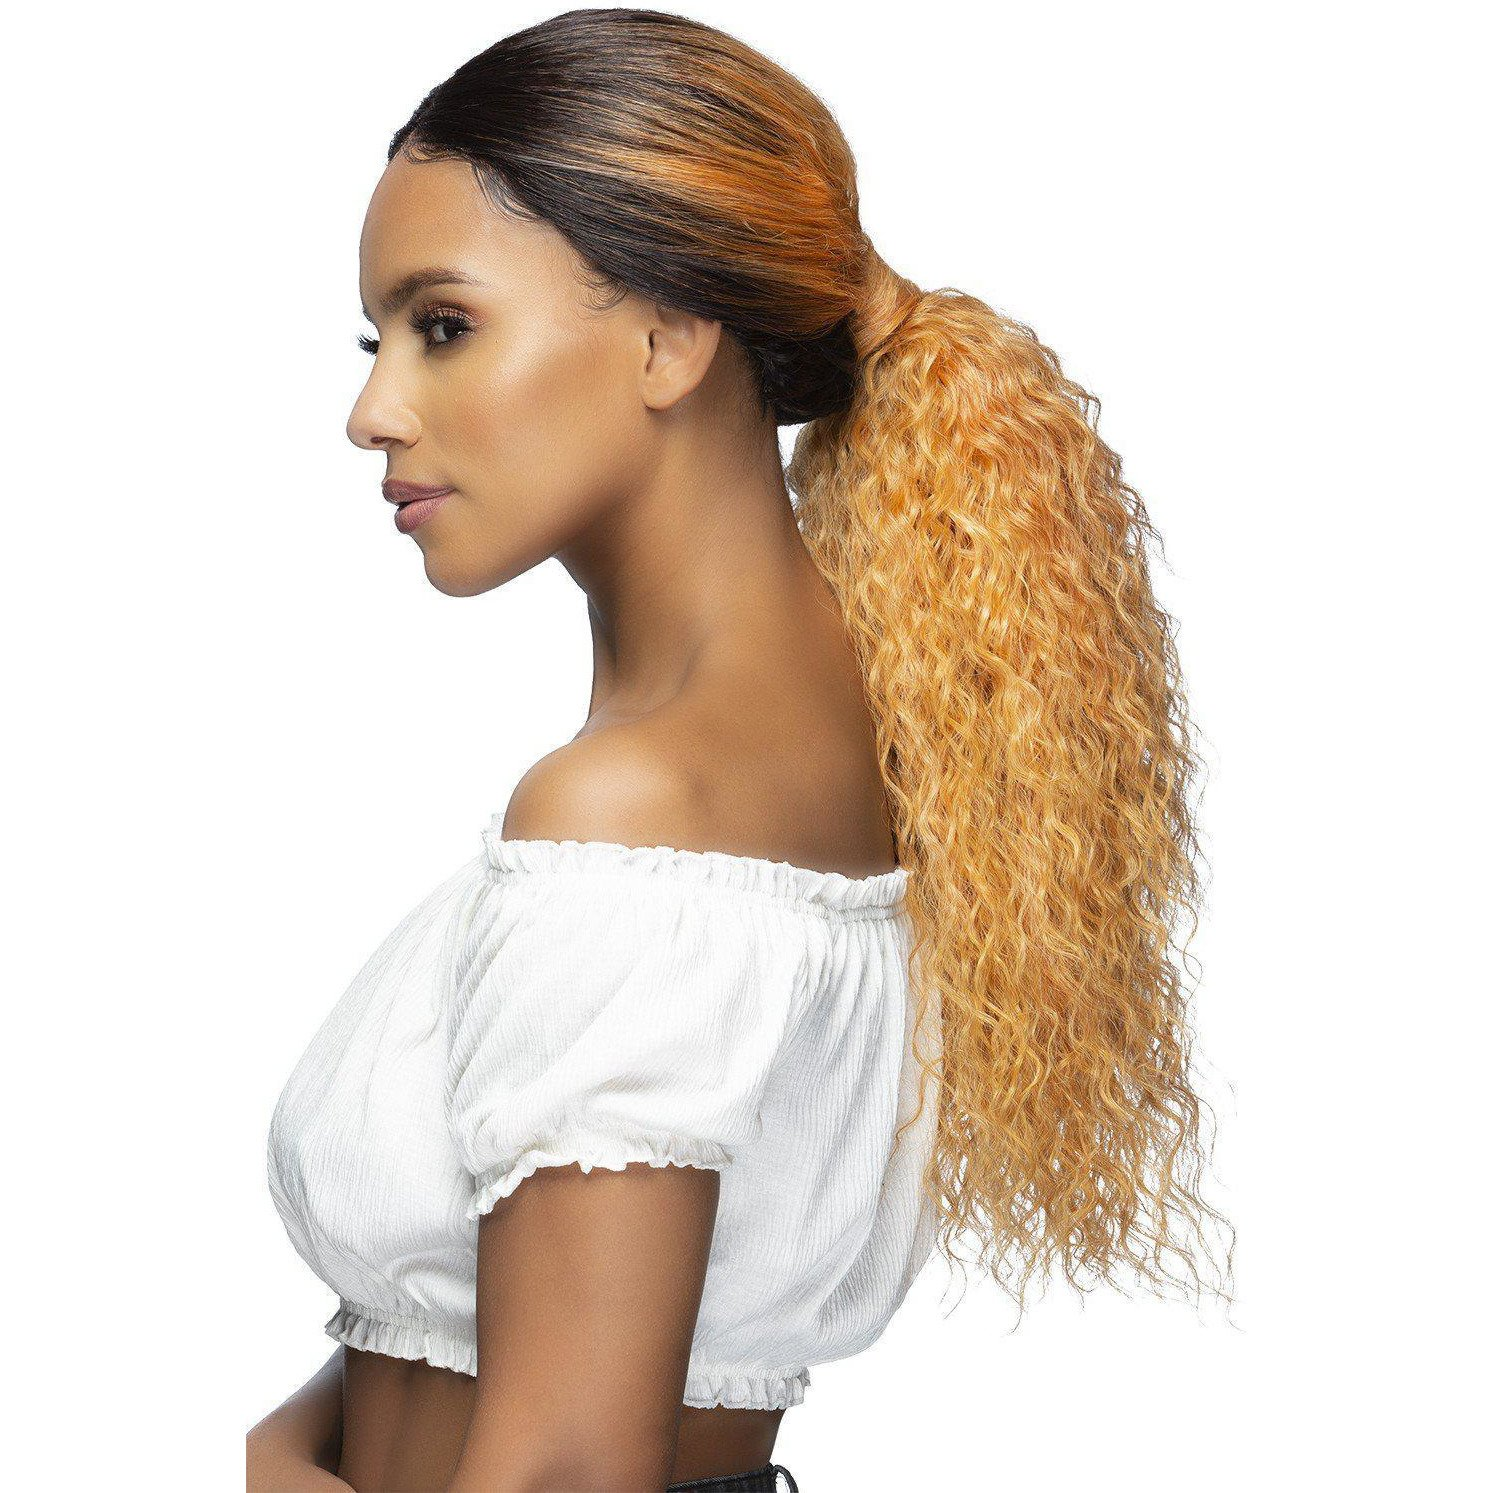 Find Your Beautiful Styles With a Ponytail Wig